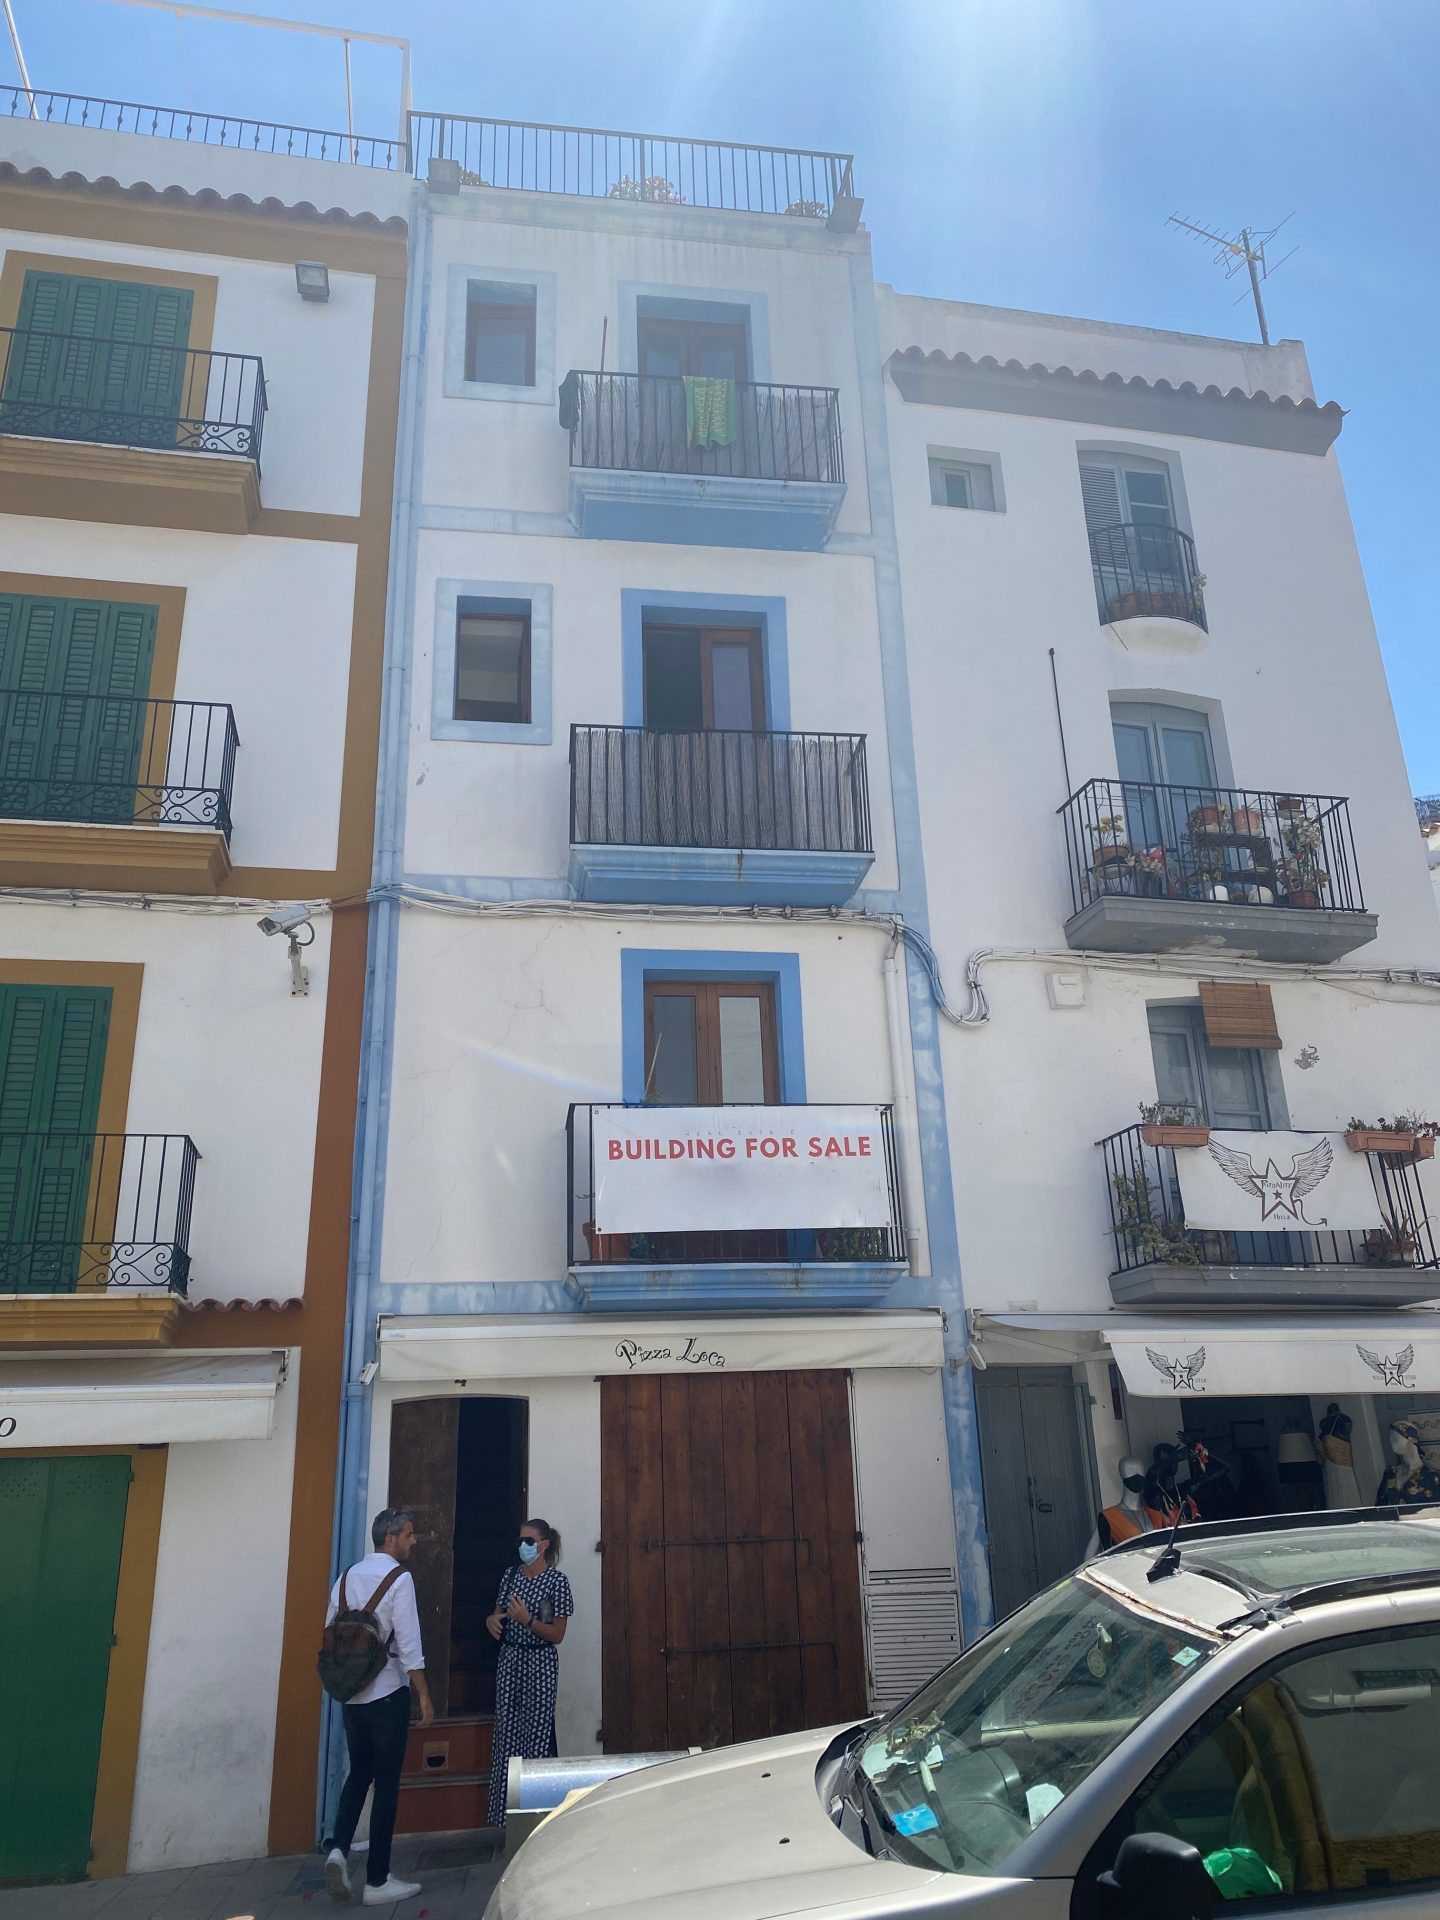 Building In Ibiza Town For Sale With License For Small Restaurant Ibiza Luxury Xl